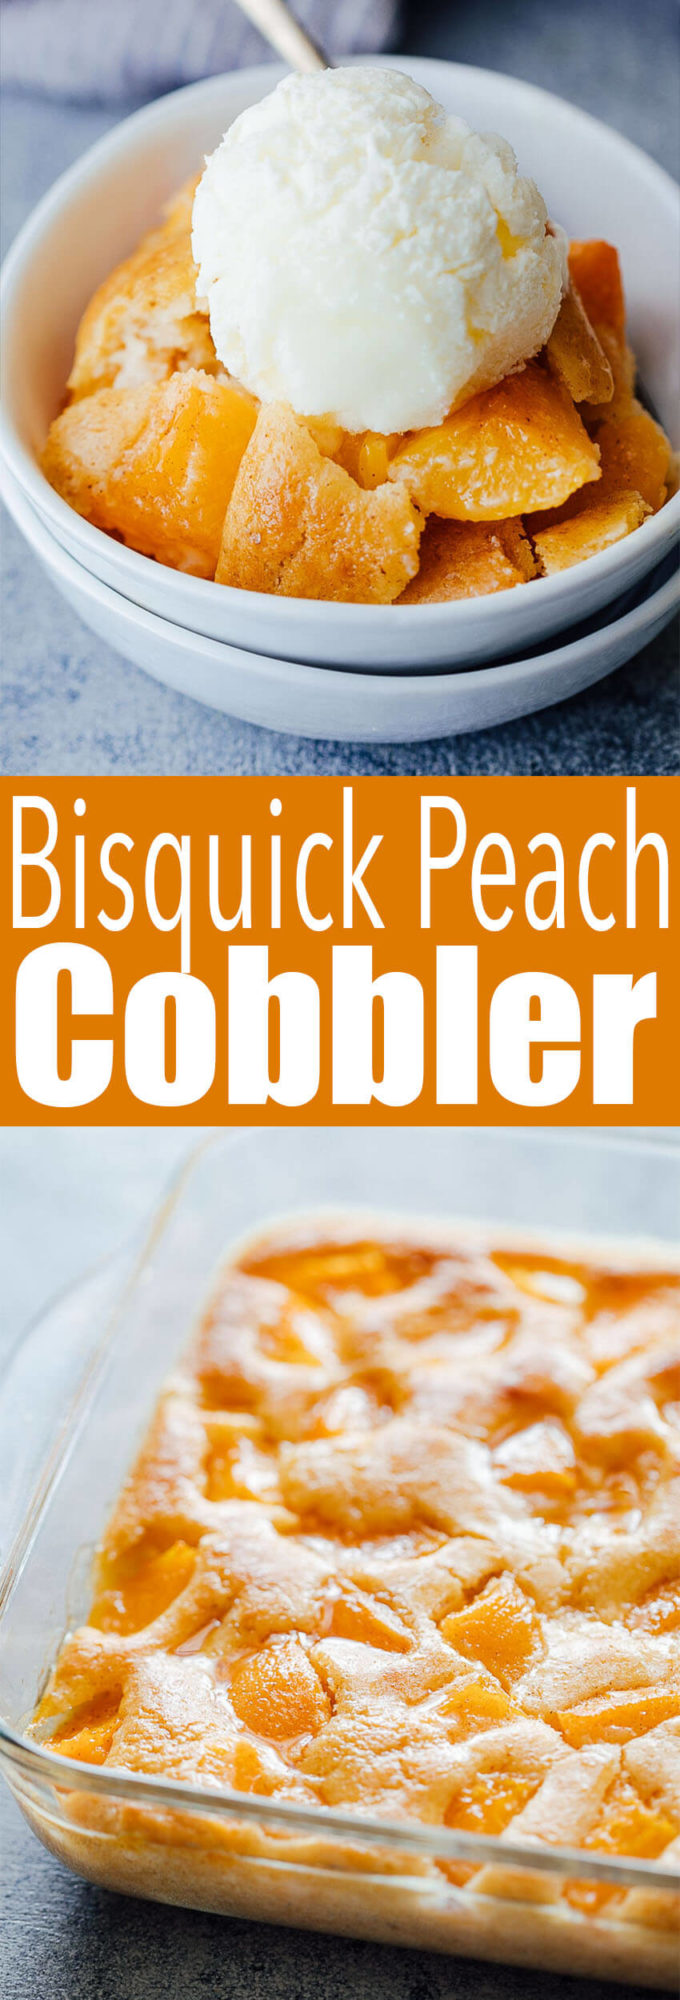 Deliciously easy to make Bisquick Peach Cobbler, a quick cobbler made with pancake mix.